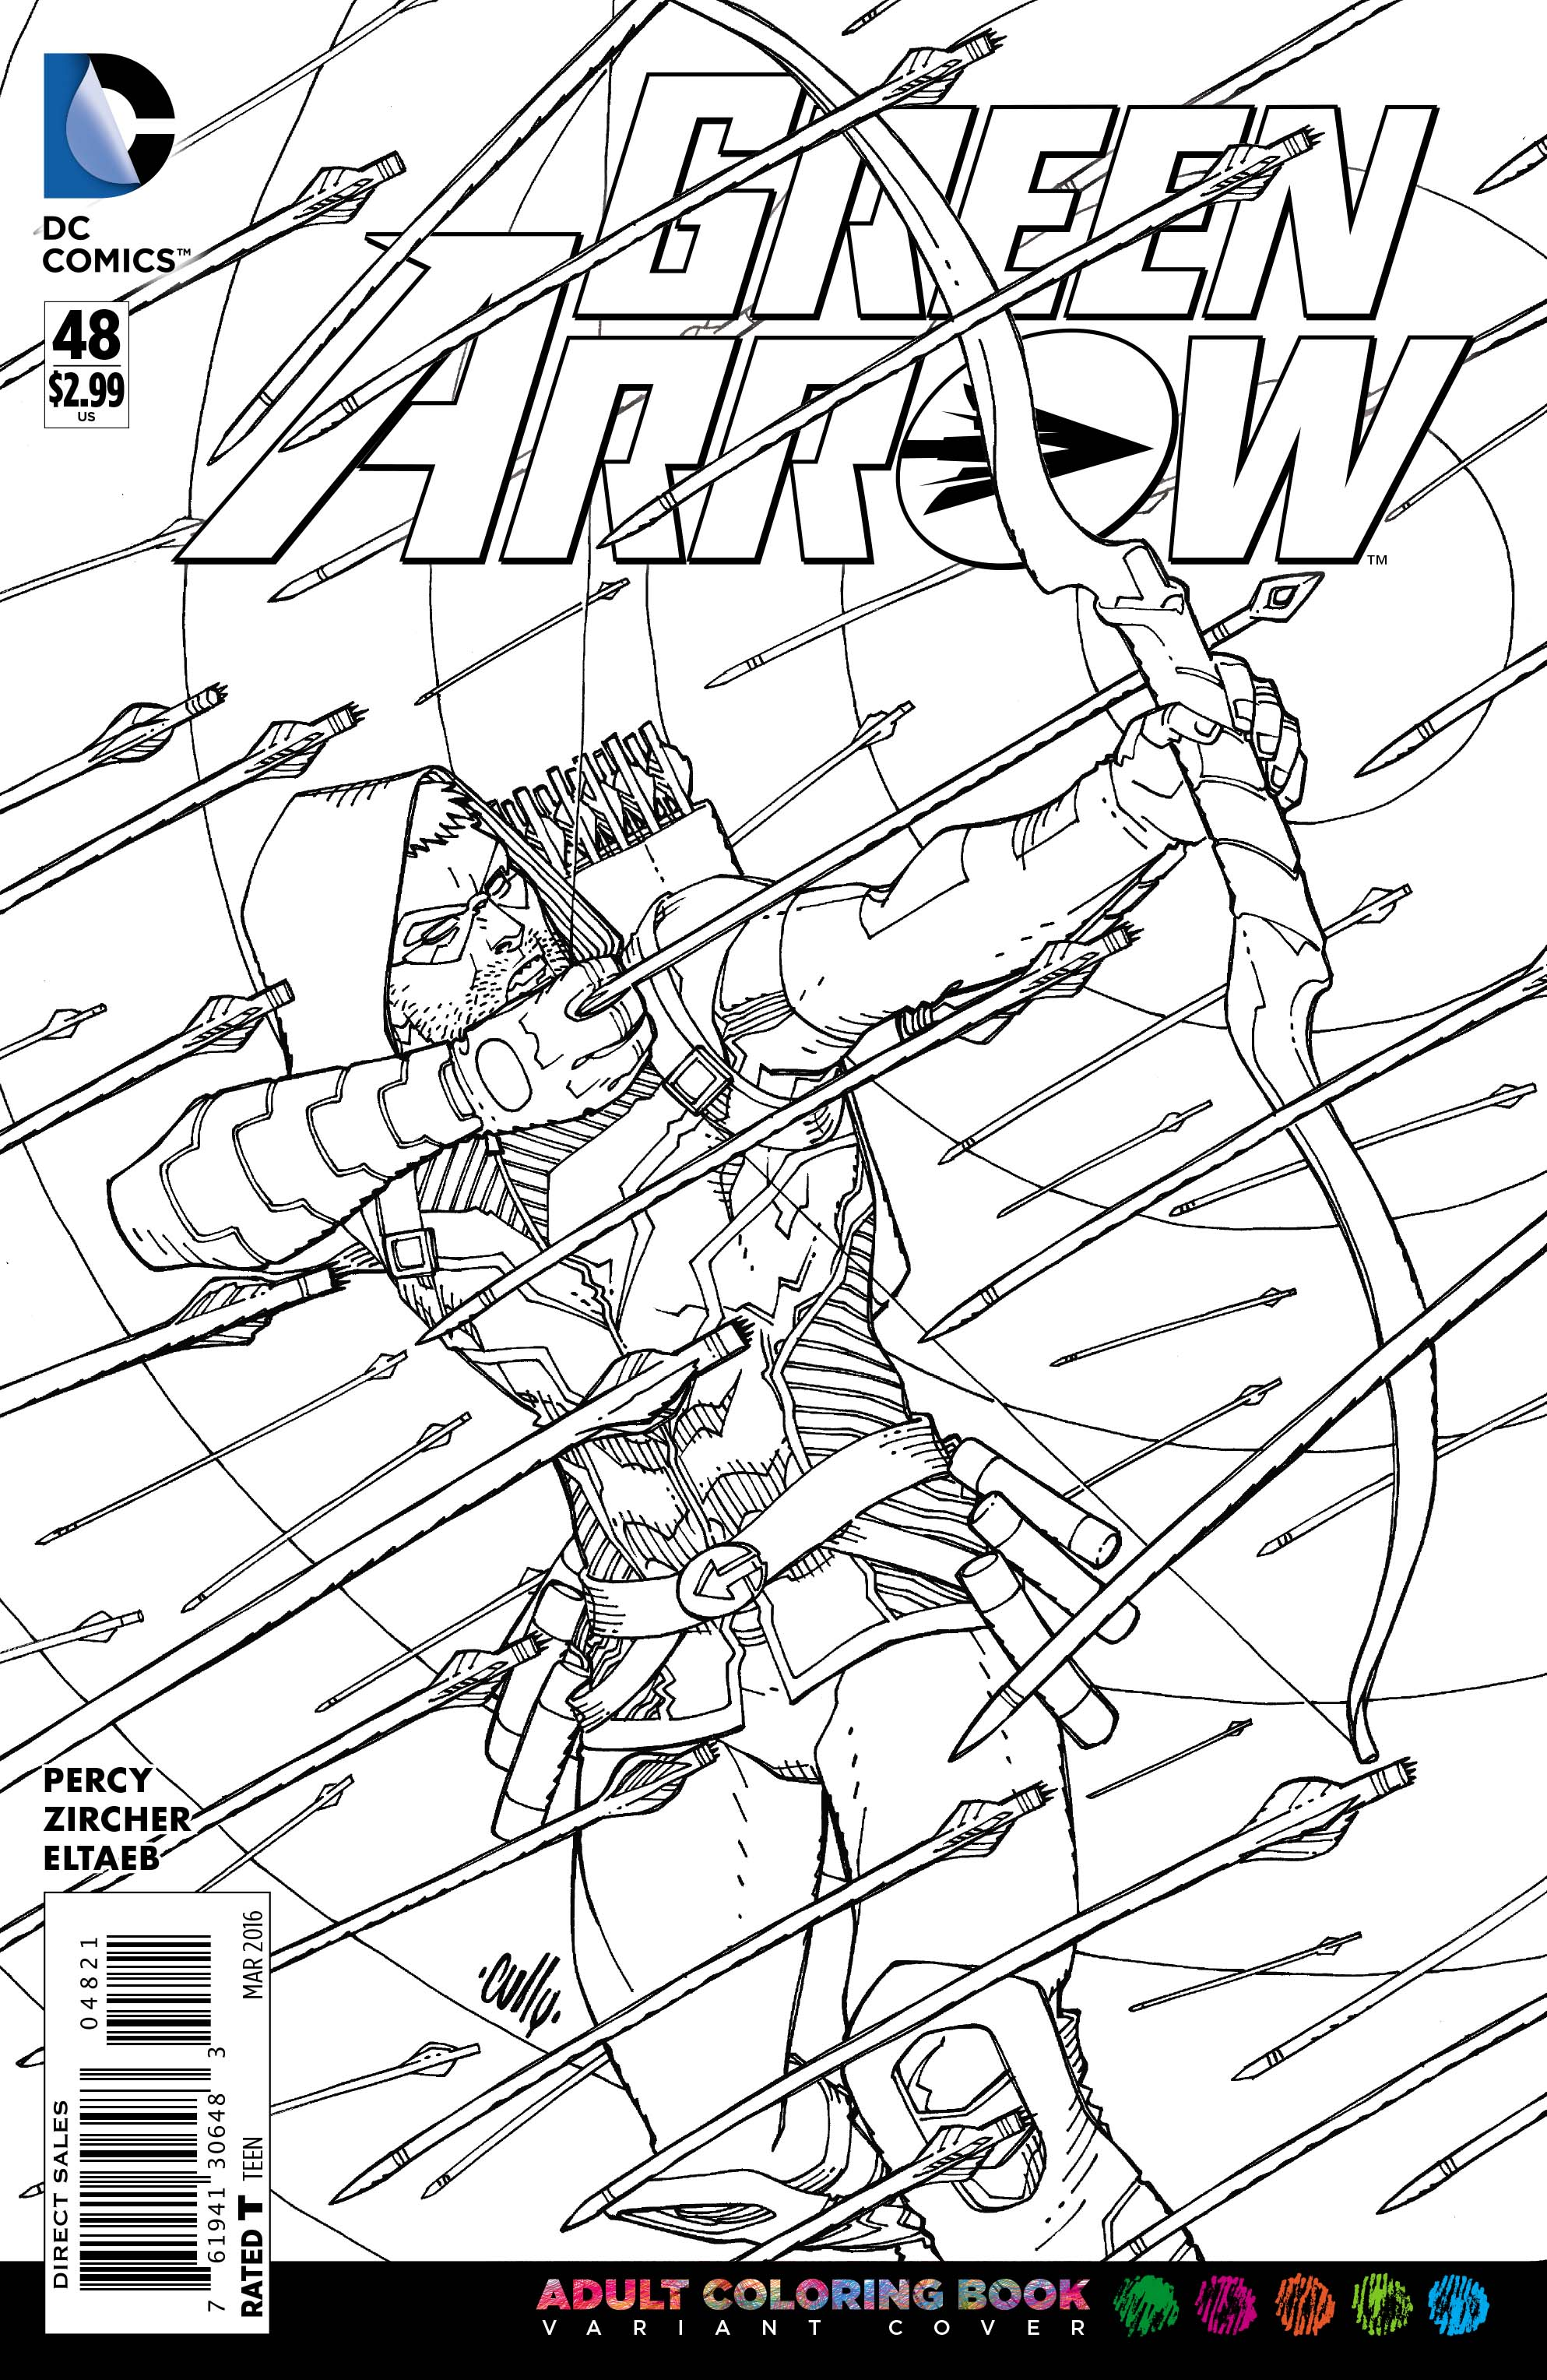 Test your coloring with dc comics adult coloring book - Coloriage dc comics ...